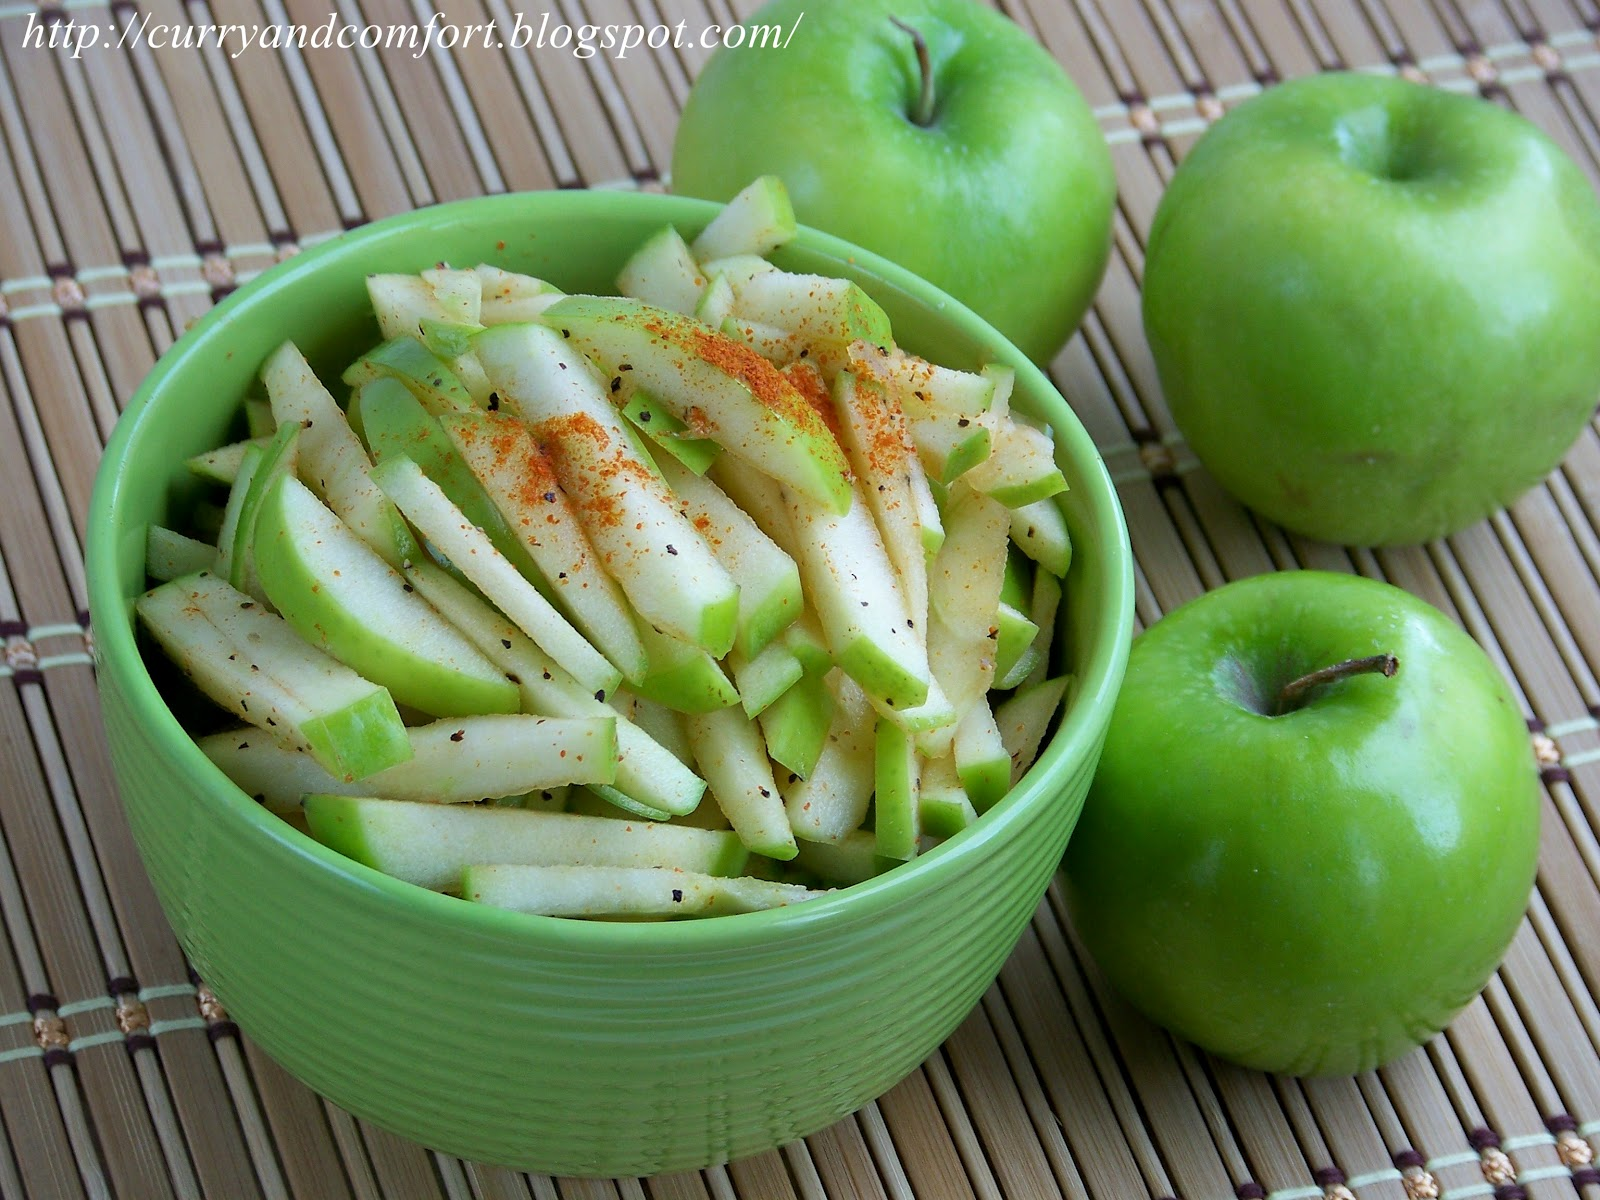 Curry and Comfort: Granny Smith Apple Slaw Salad (Throwback Thursday)